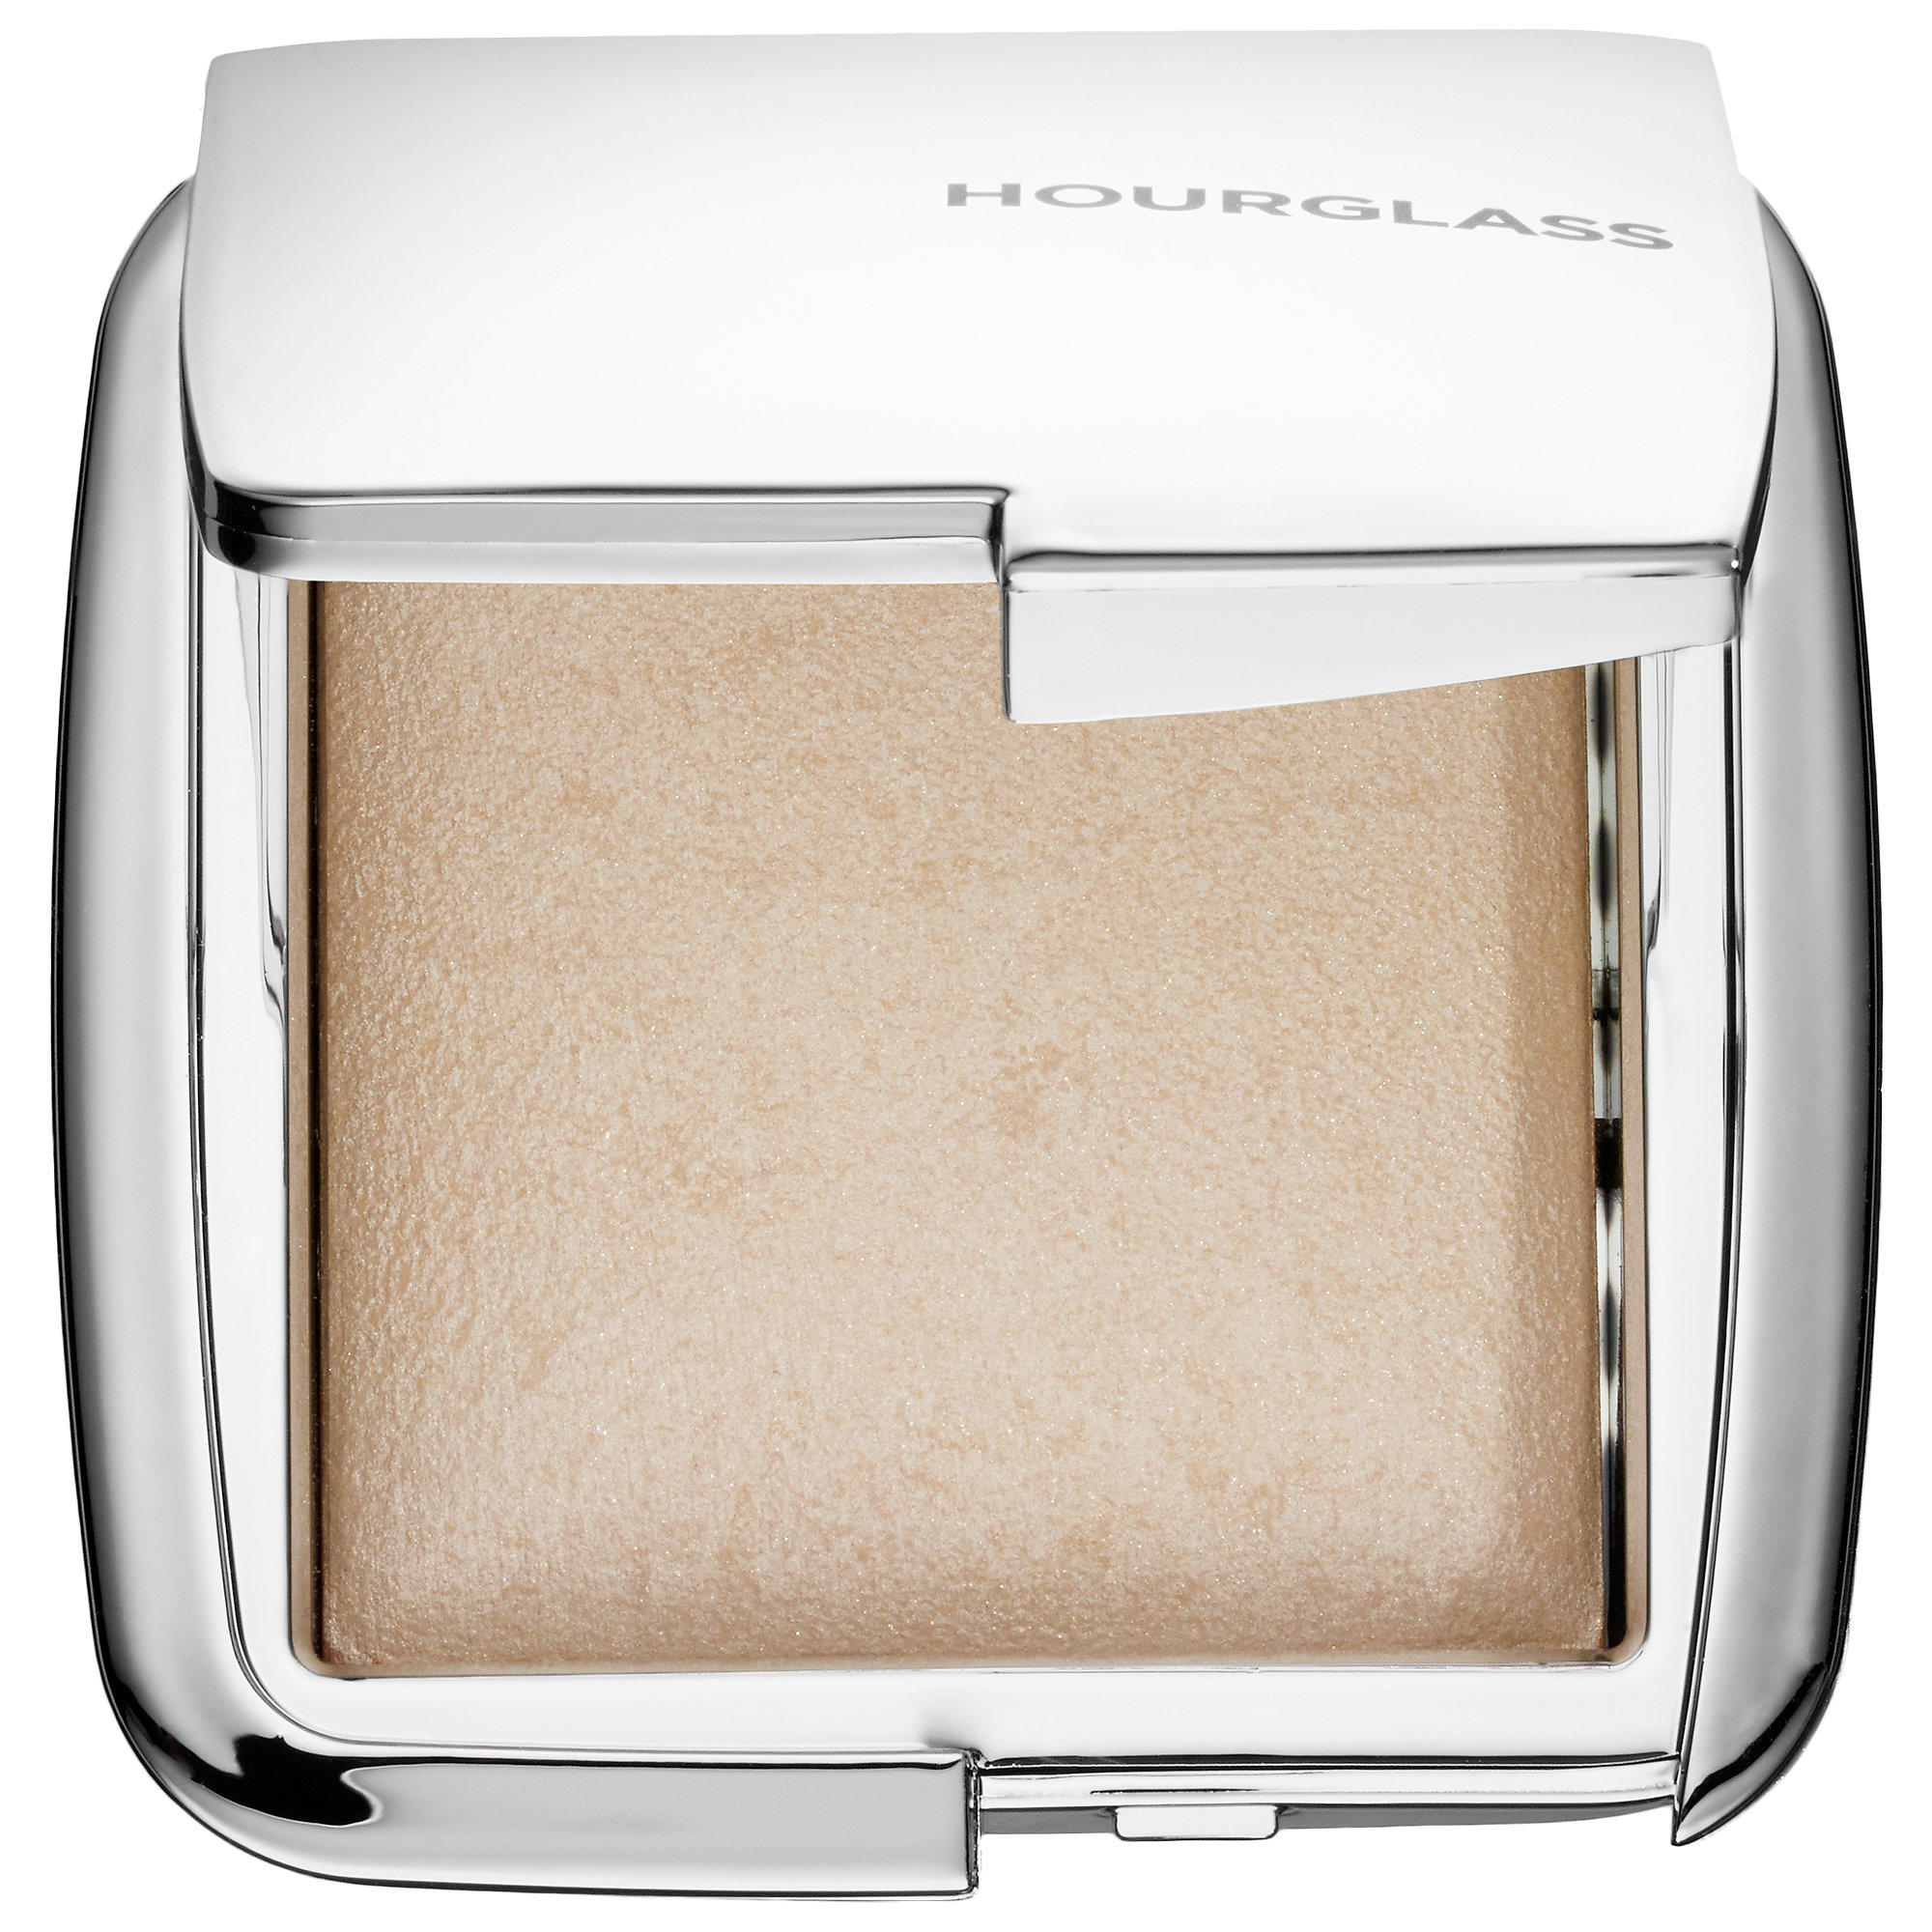 Hourglass Ambient Strobe Lighting Powder Brilliant Strobe Light